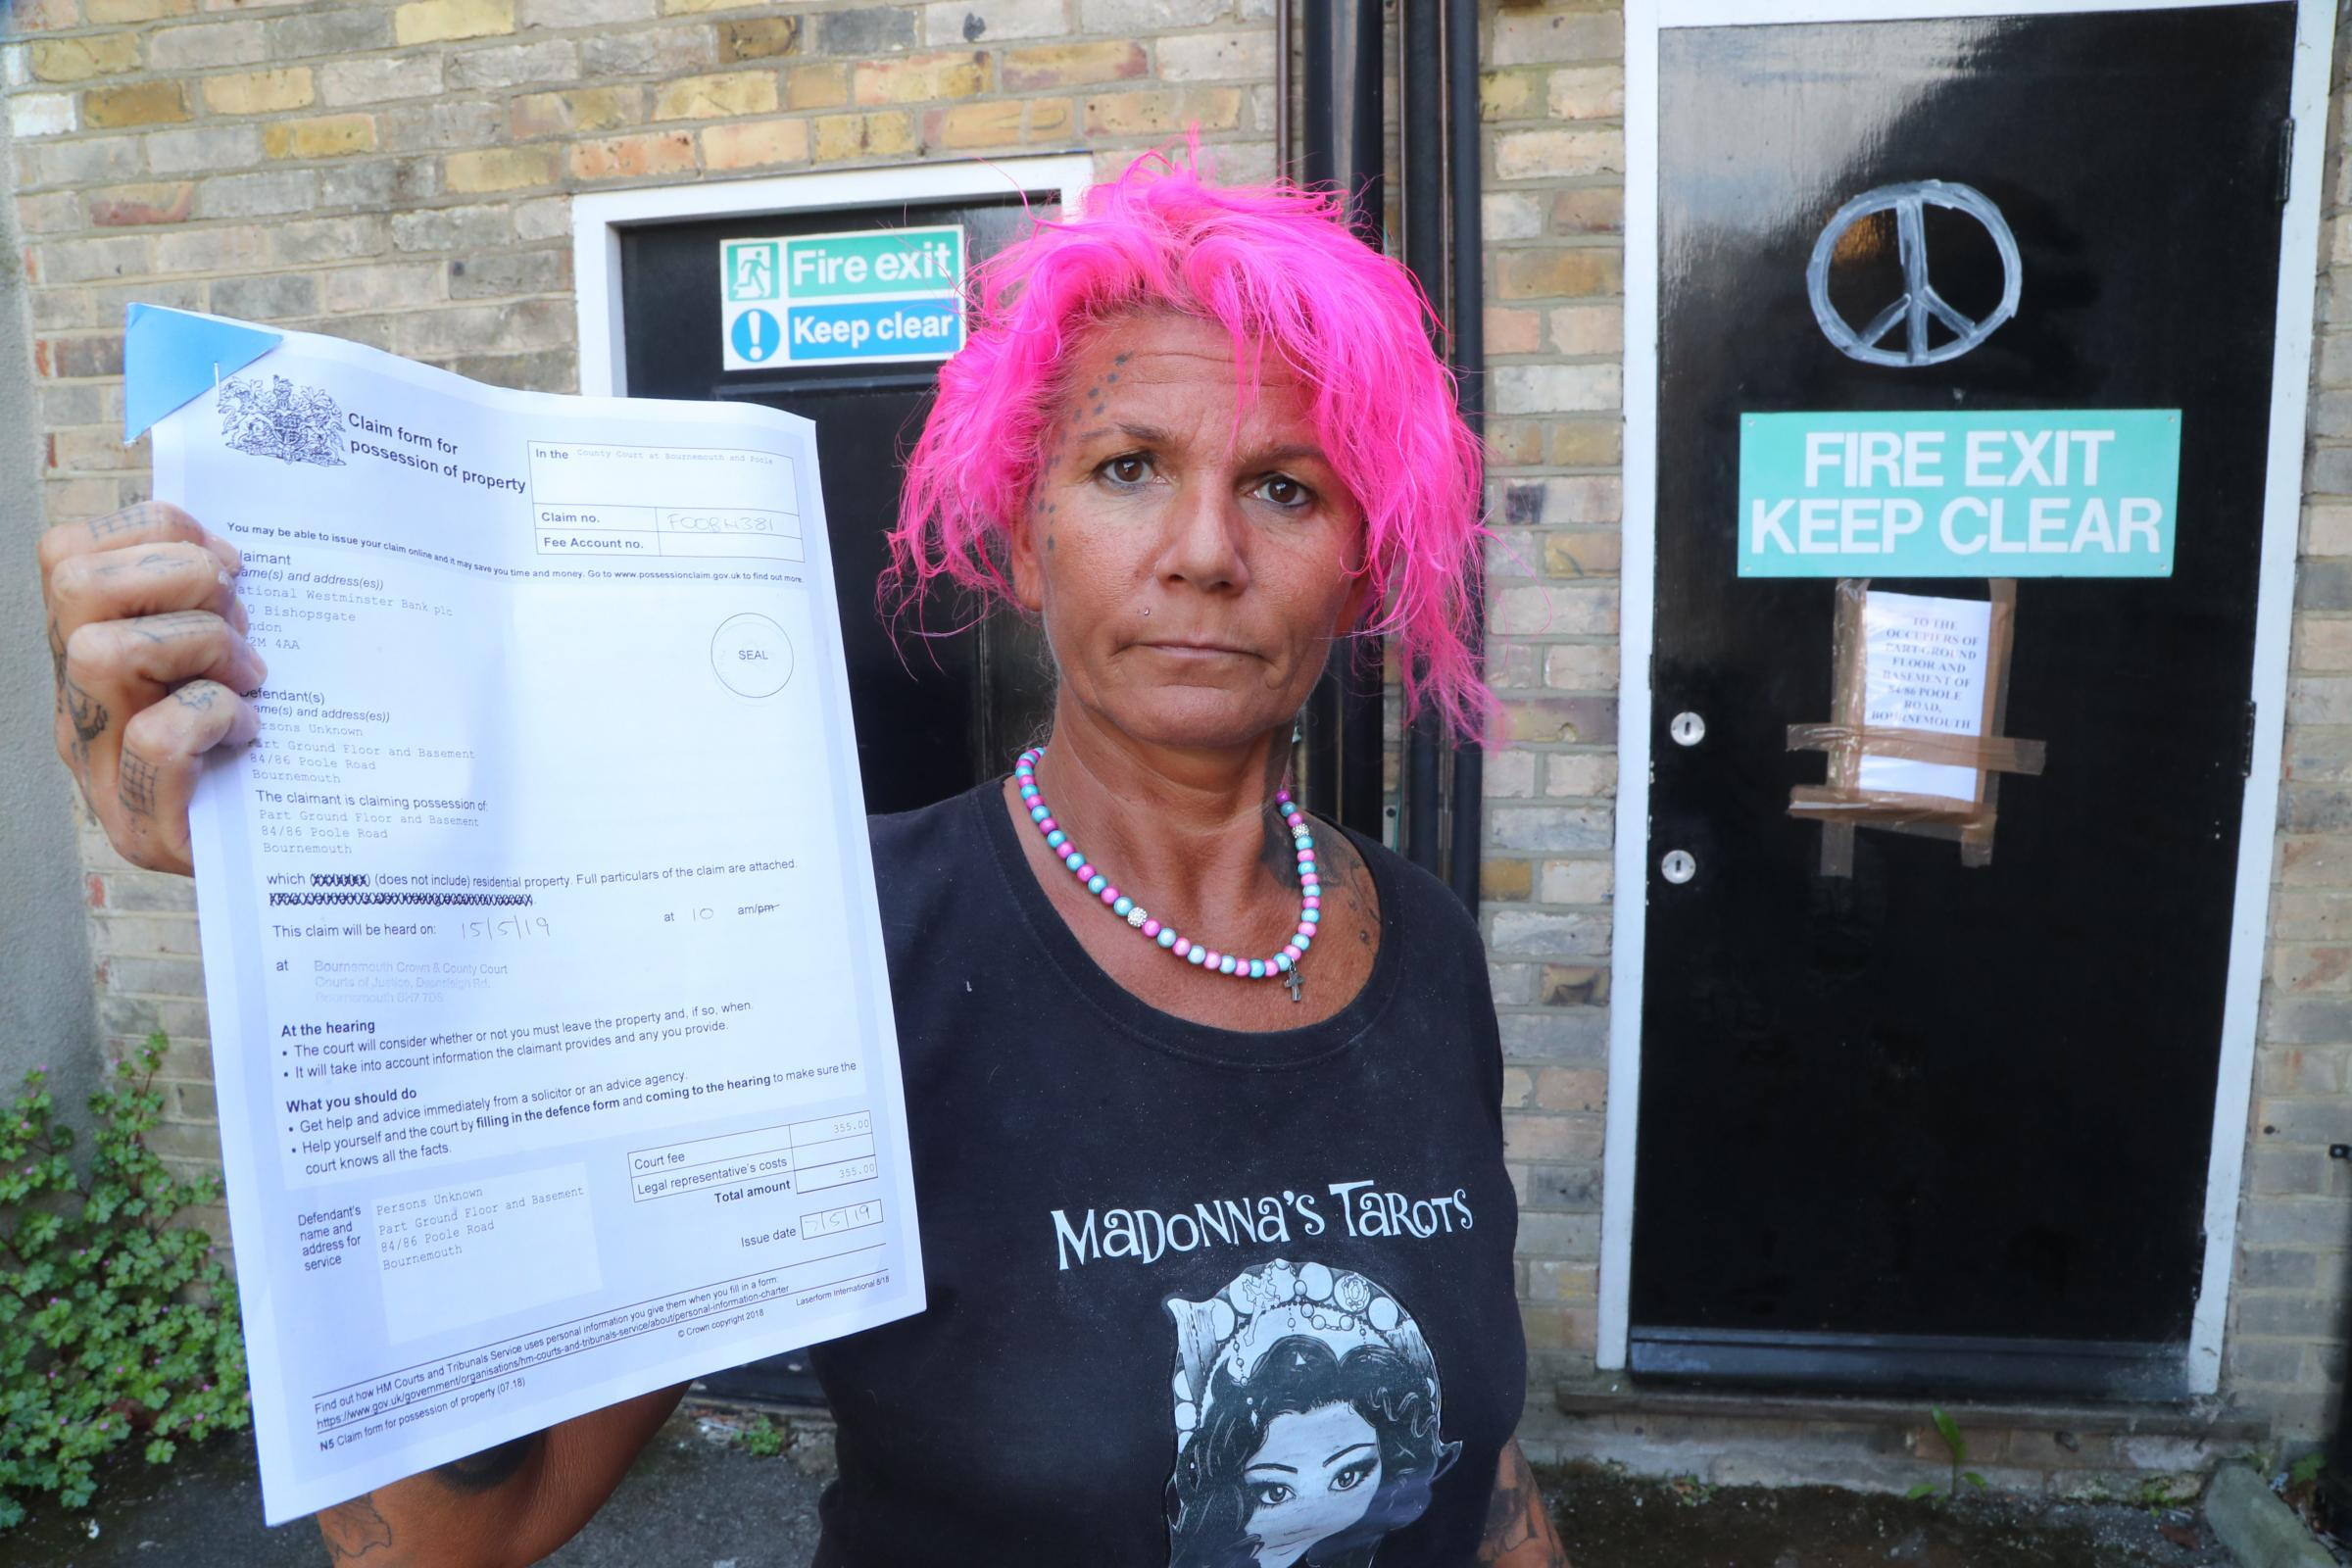 Squatters had moved into the former NatWest in Westbourne